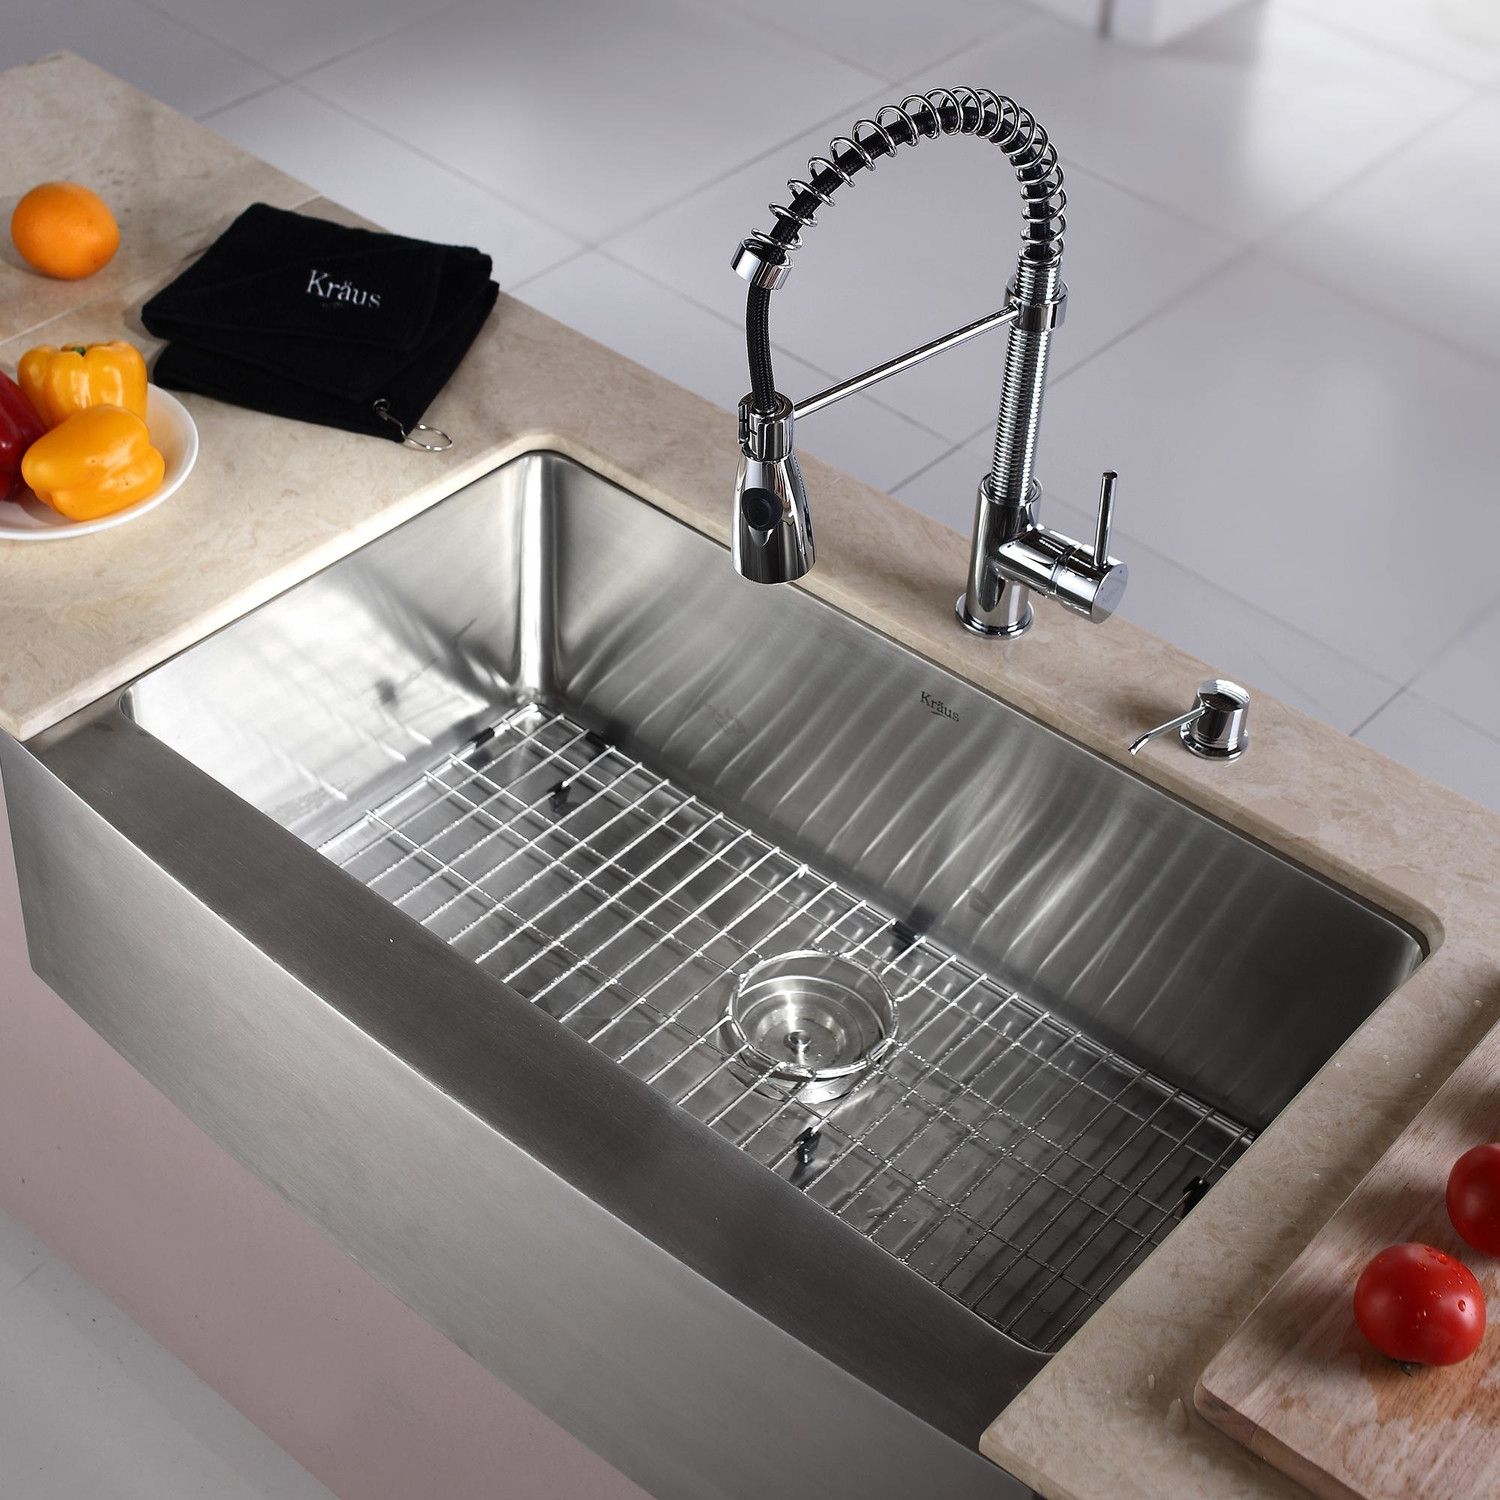 Stainless Steel Kitchen Sinks For 24 Cabinet